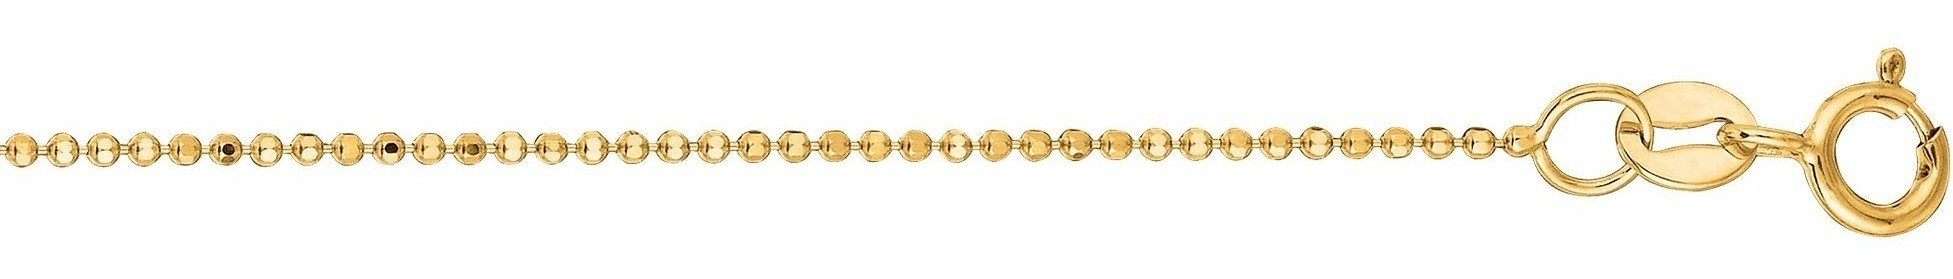 "20"" 14K Yellow Gold 1.0mm (0.04"") Polished Diamond Cut Bead Chain w/ Spring Ring Clasp"